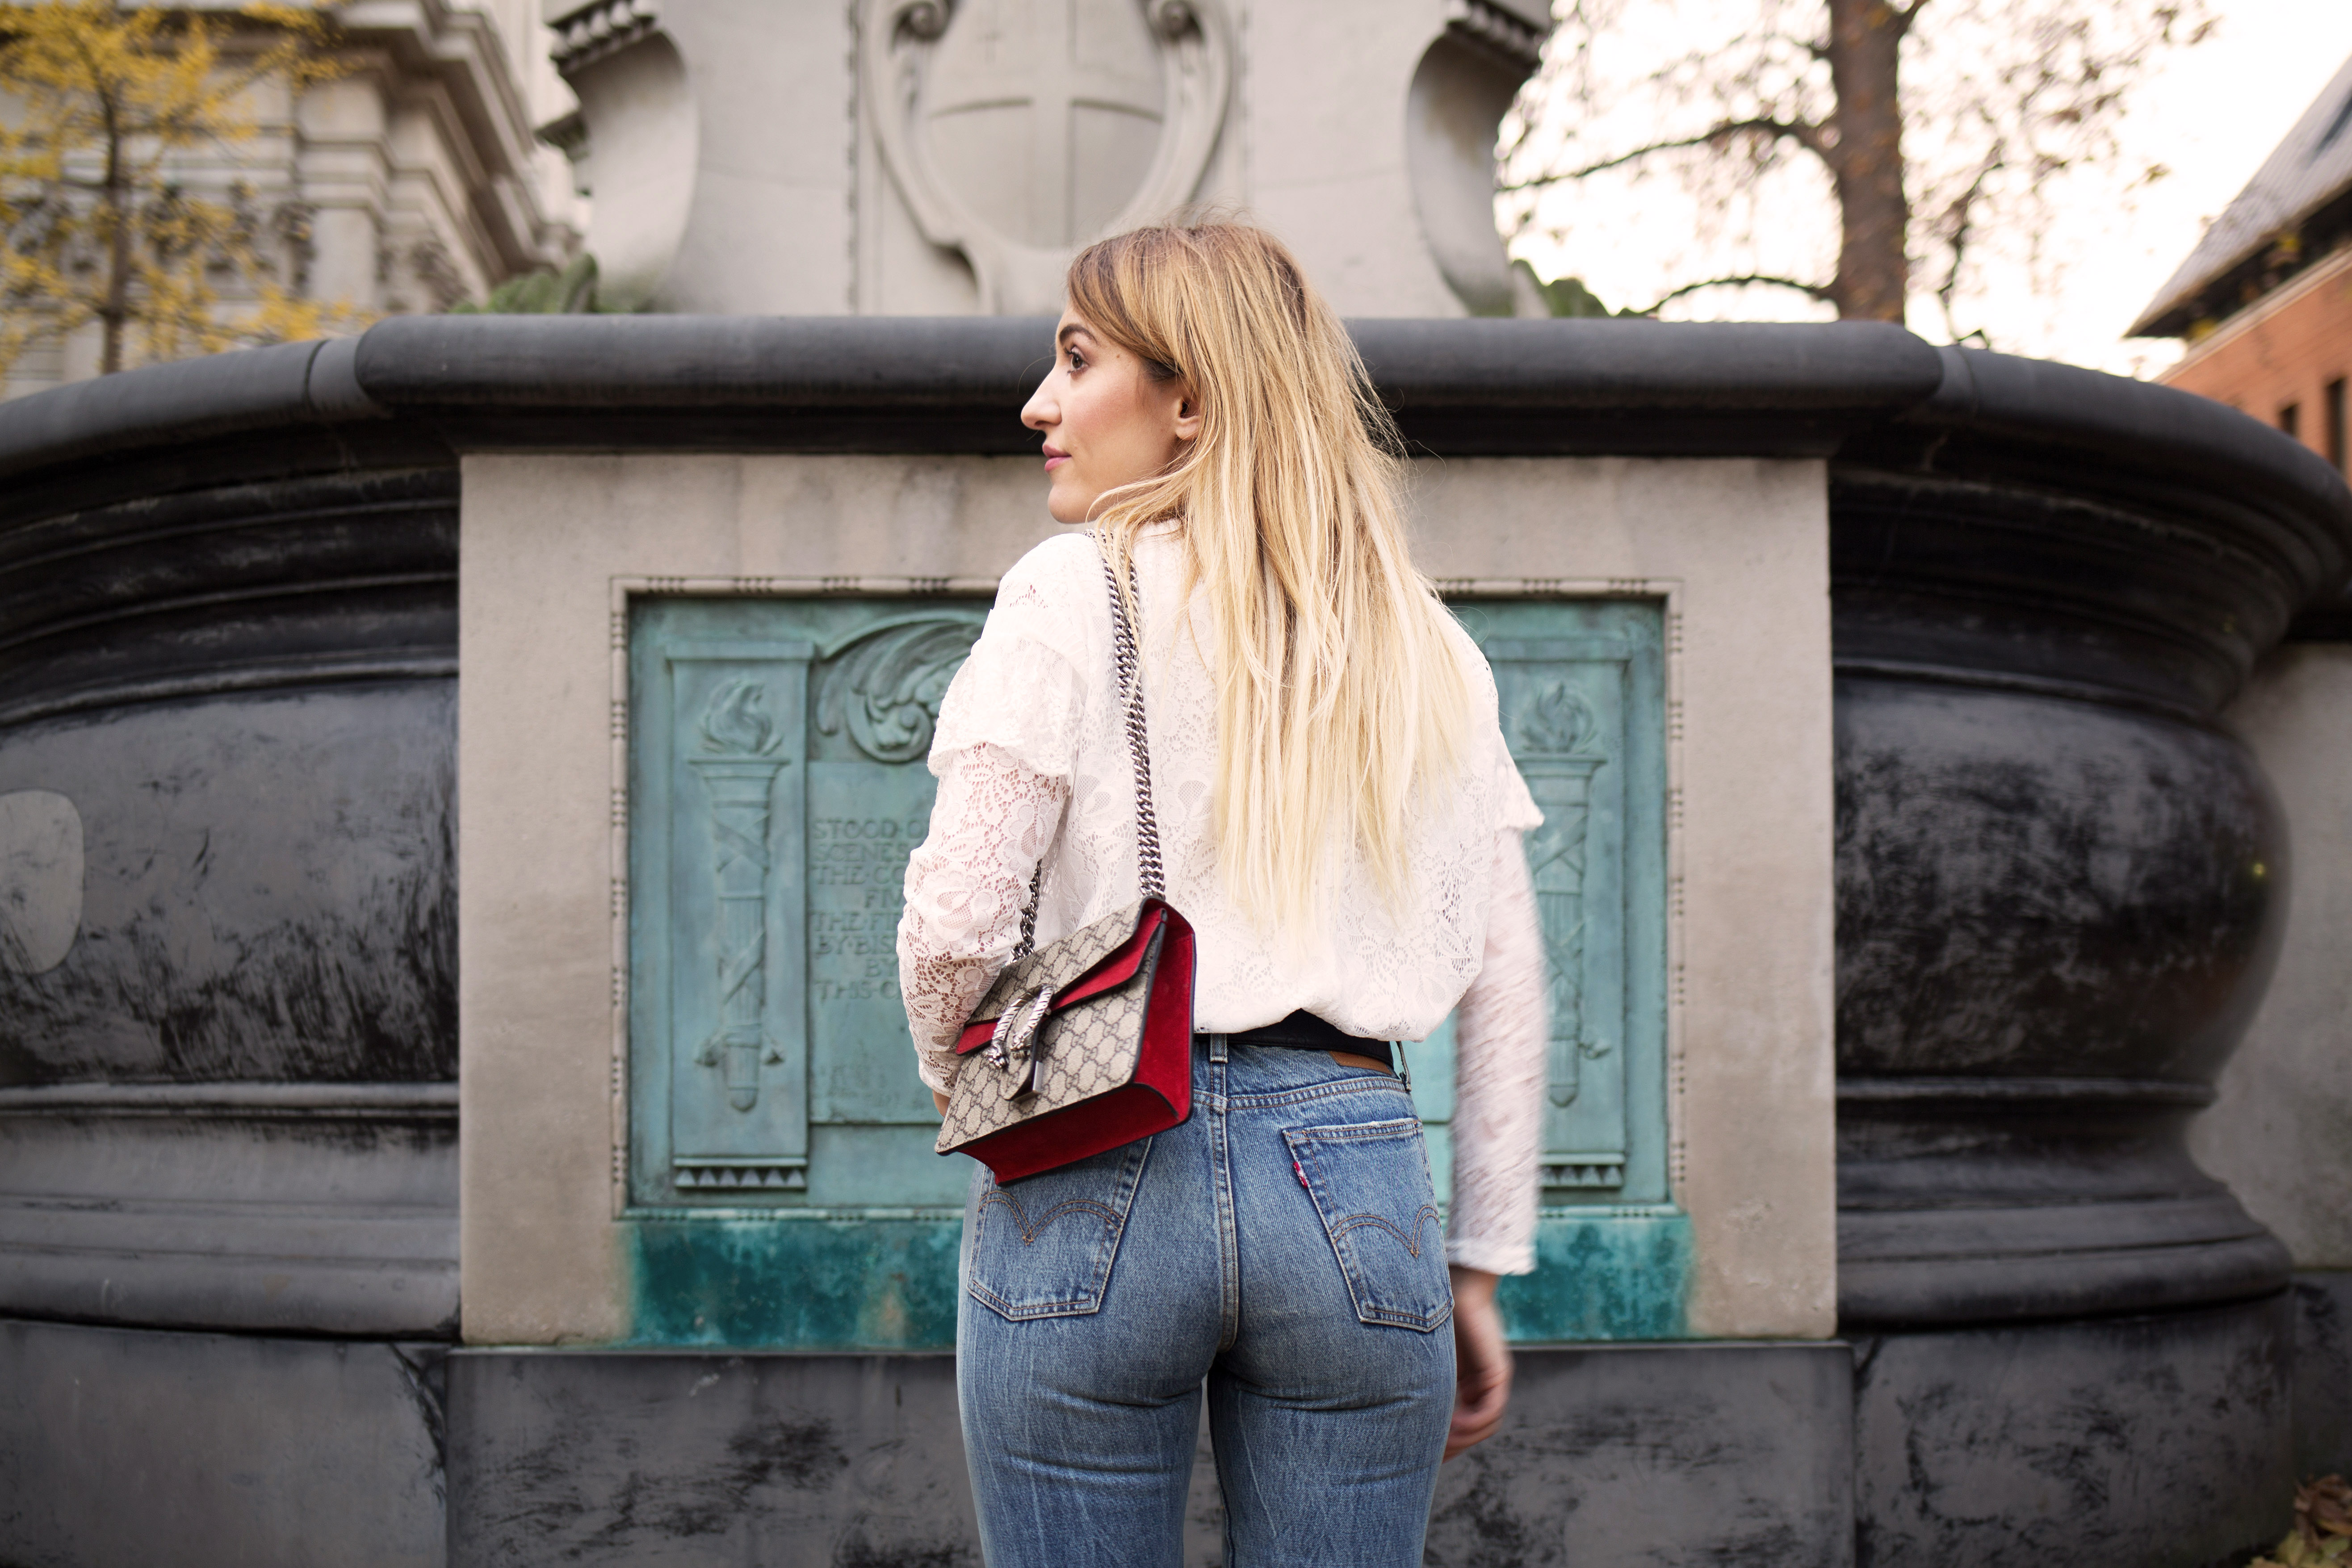 Vans and Levi's Jeans - A Favourite Casual Look